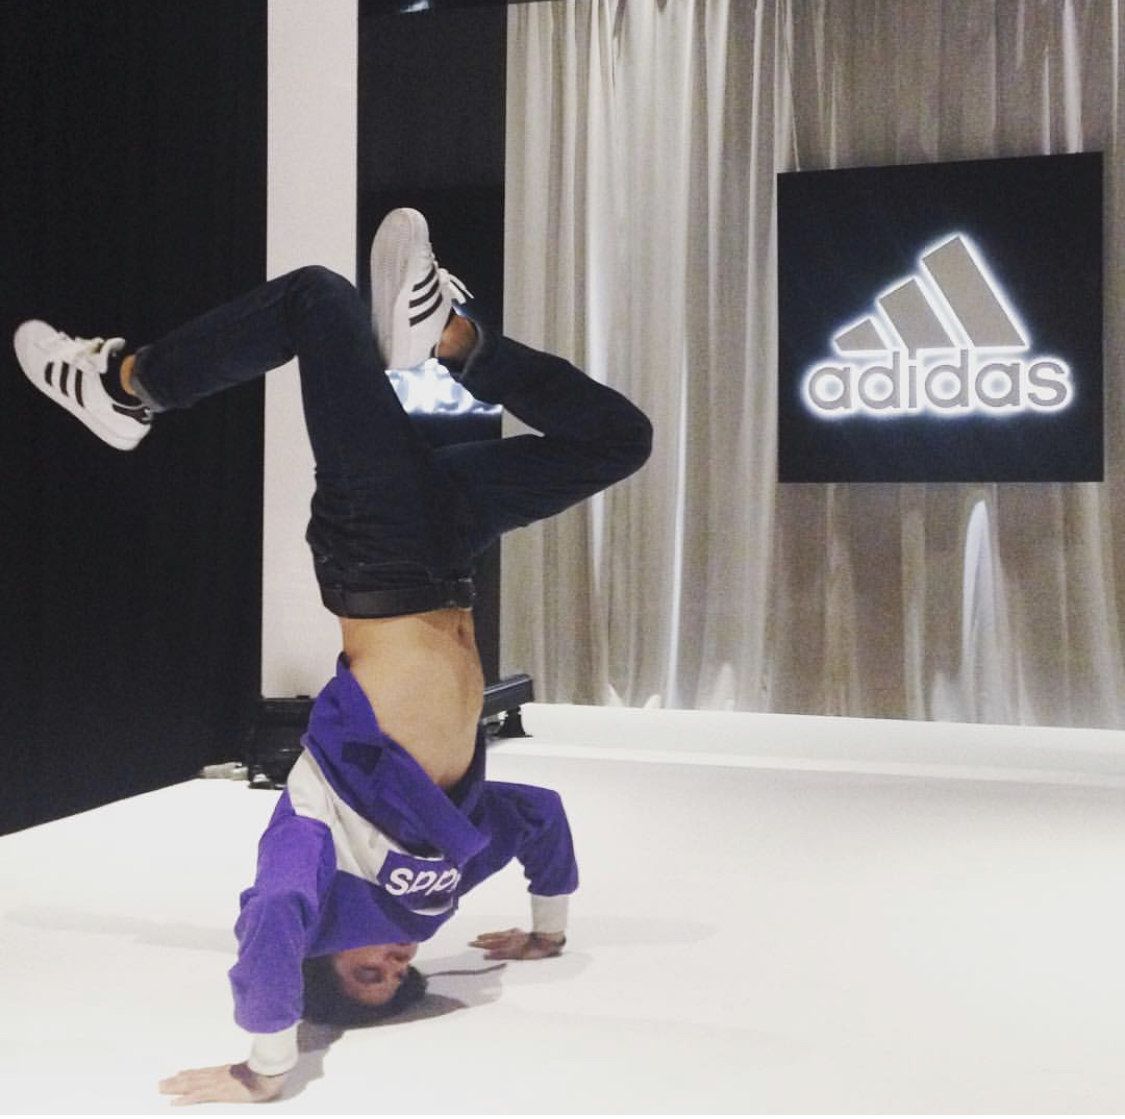 Alf Alpha @ Adidas Events